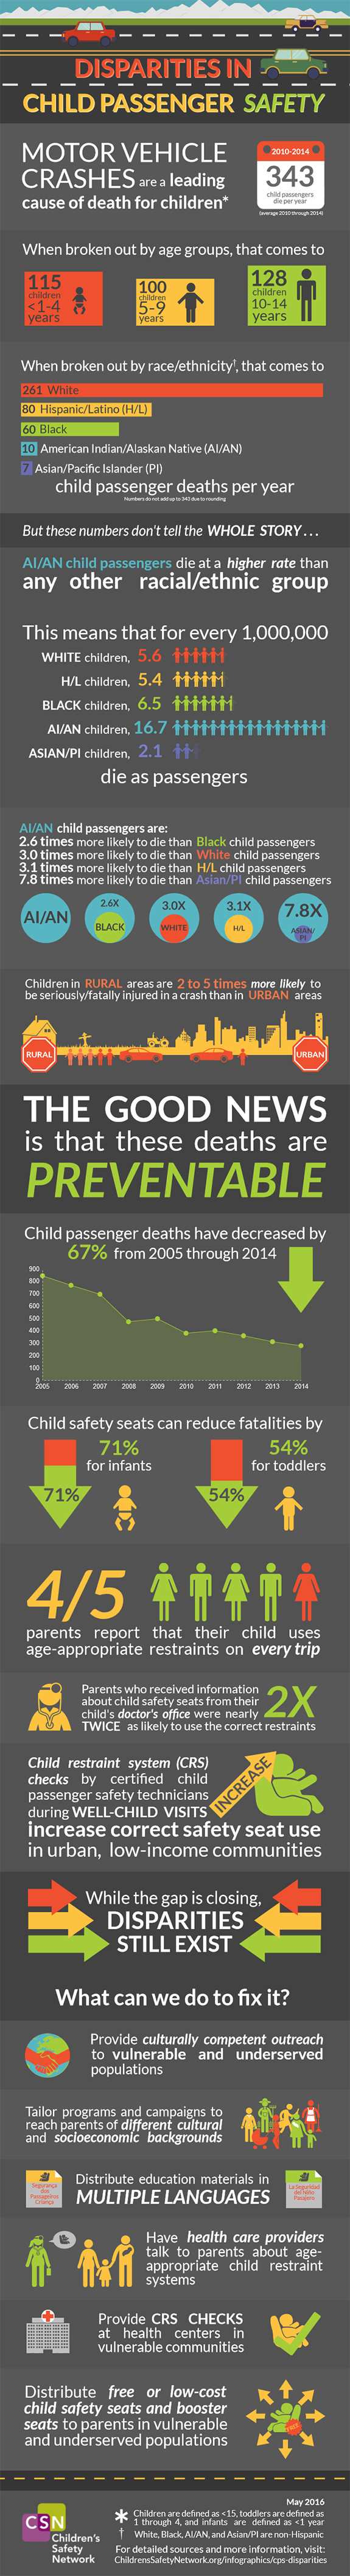 This CSN infographic focuses on the disparities in child passenger deaths and offers prevention strategies.